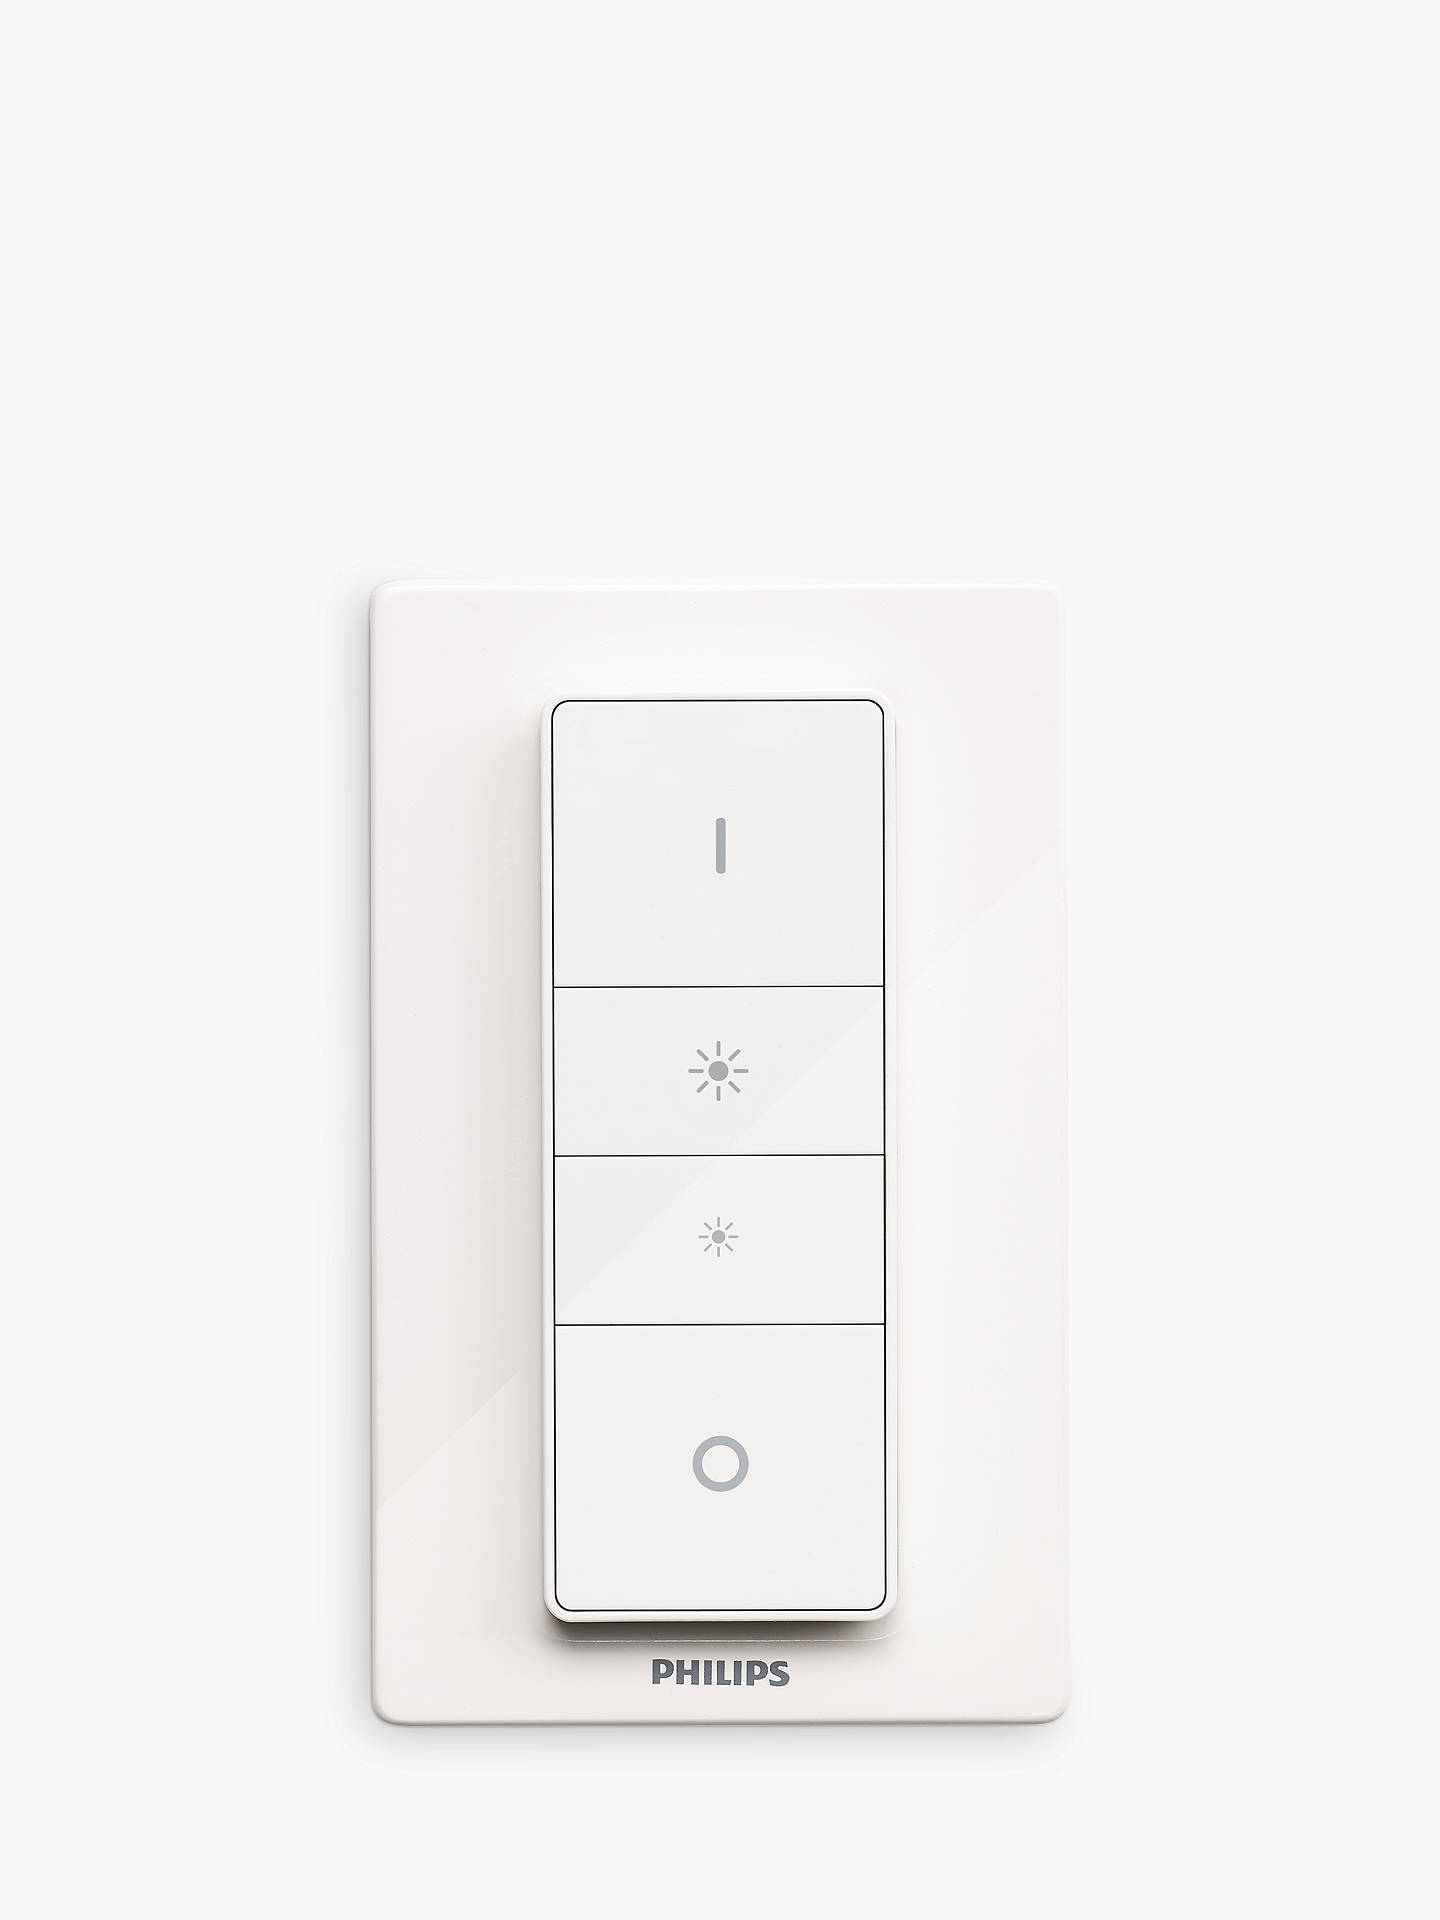 BuyPhilips Hue Dimmer Switch Online at johnlewis.com